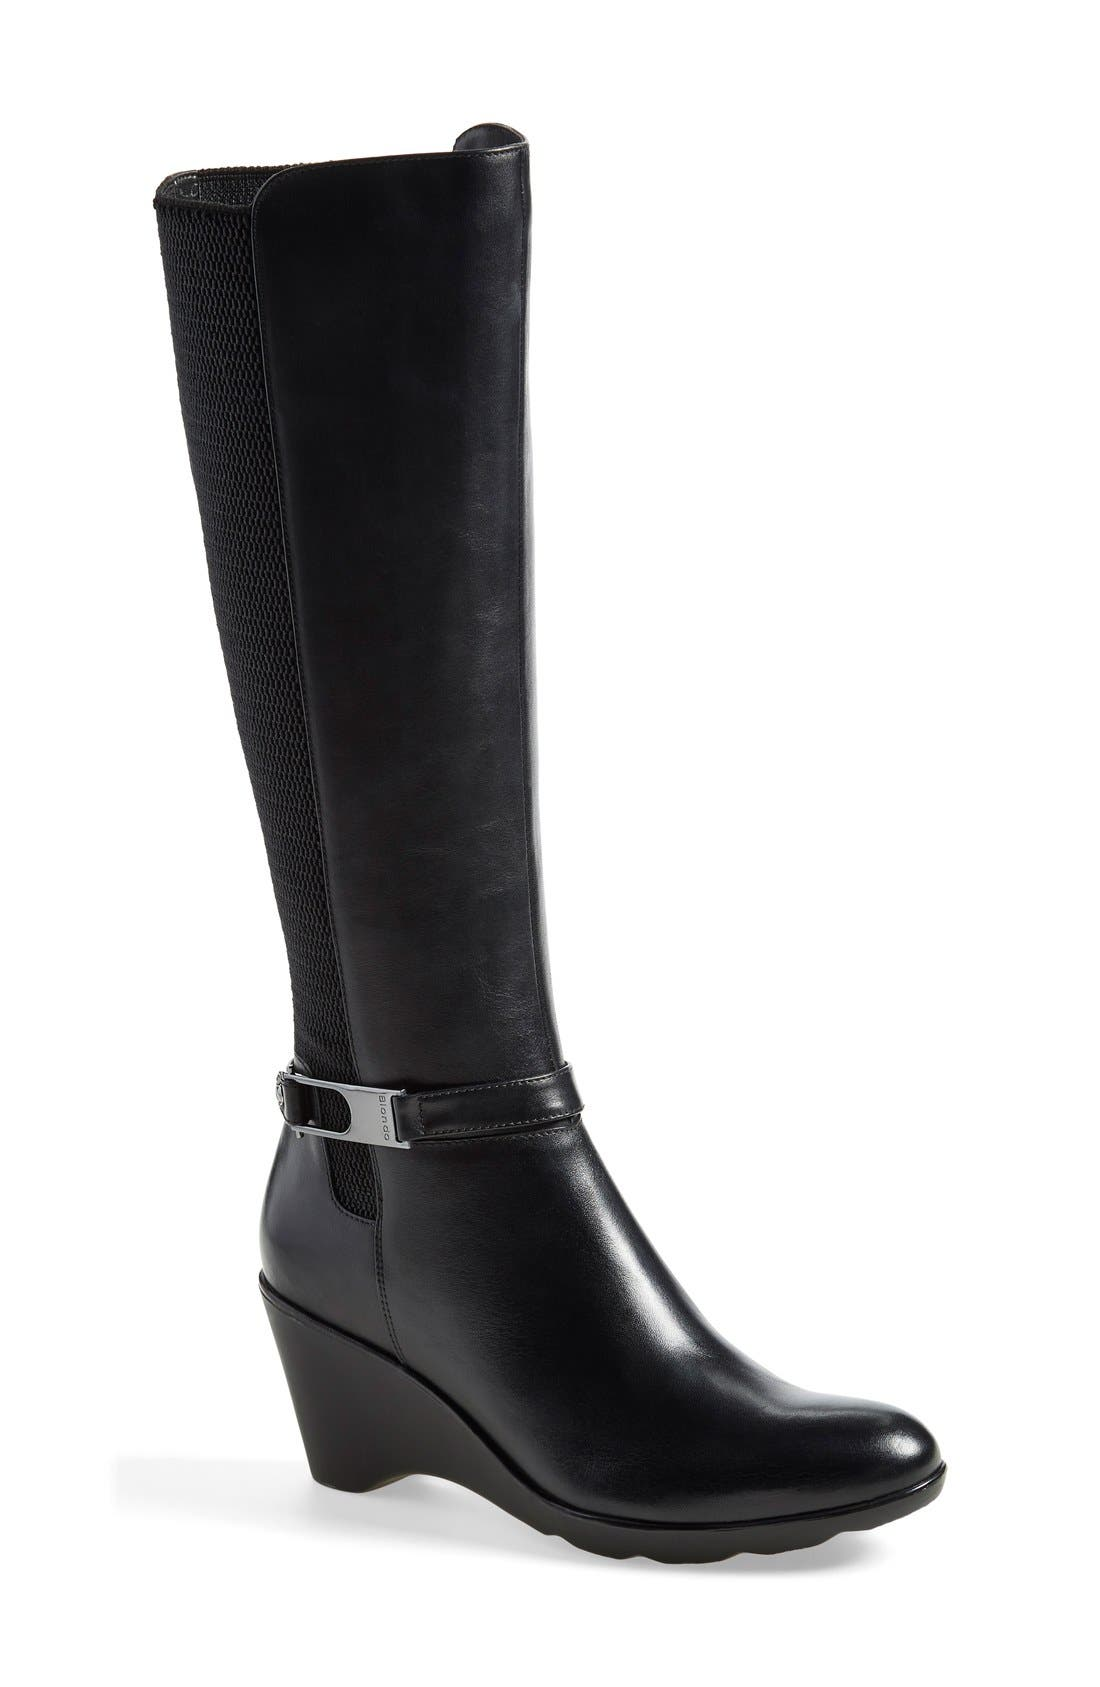 Alternate Image 1 Selected - Blondo 'Laina' Waterproof Boot (Women) (Nordstrom Exclusive)